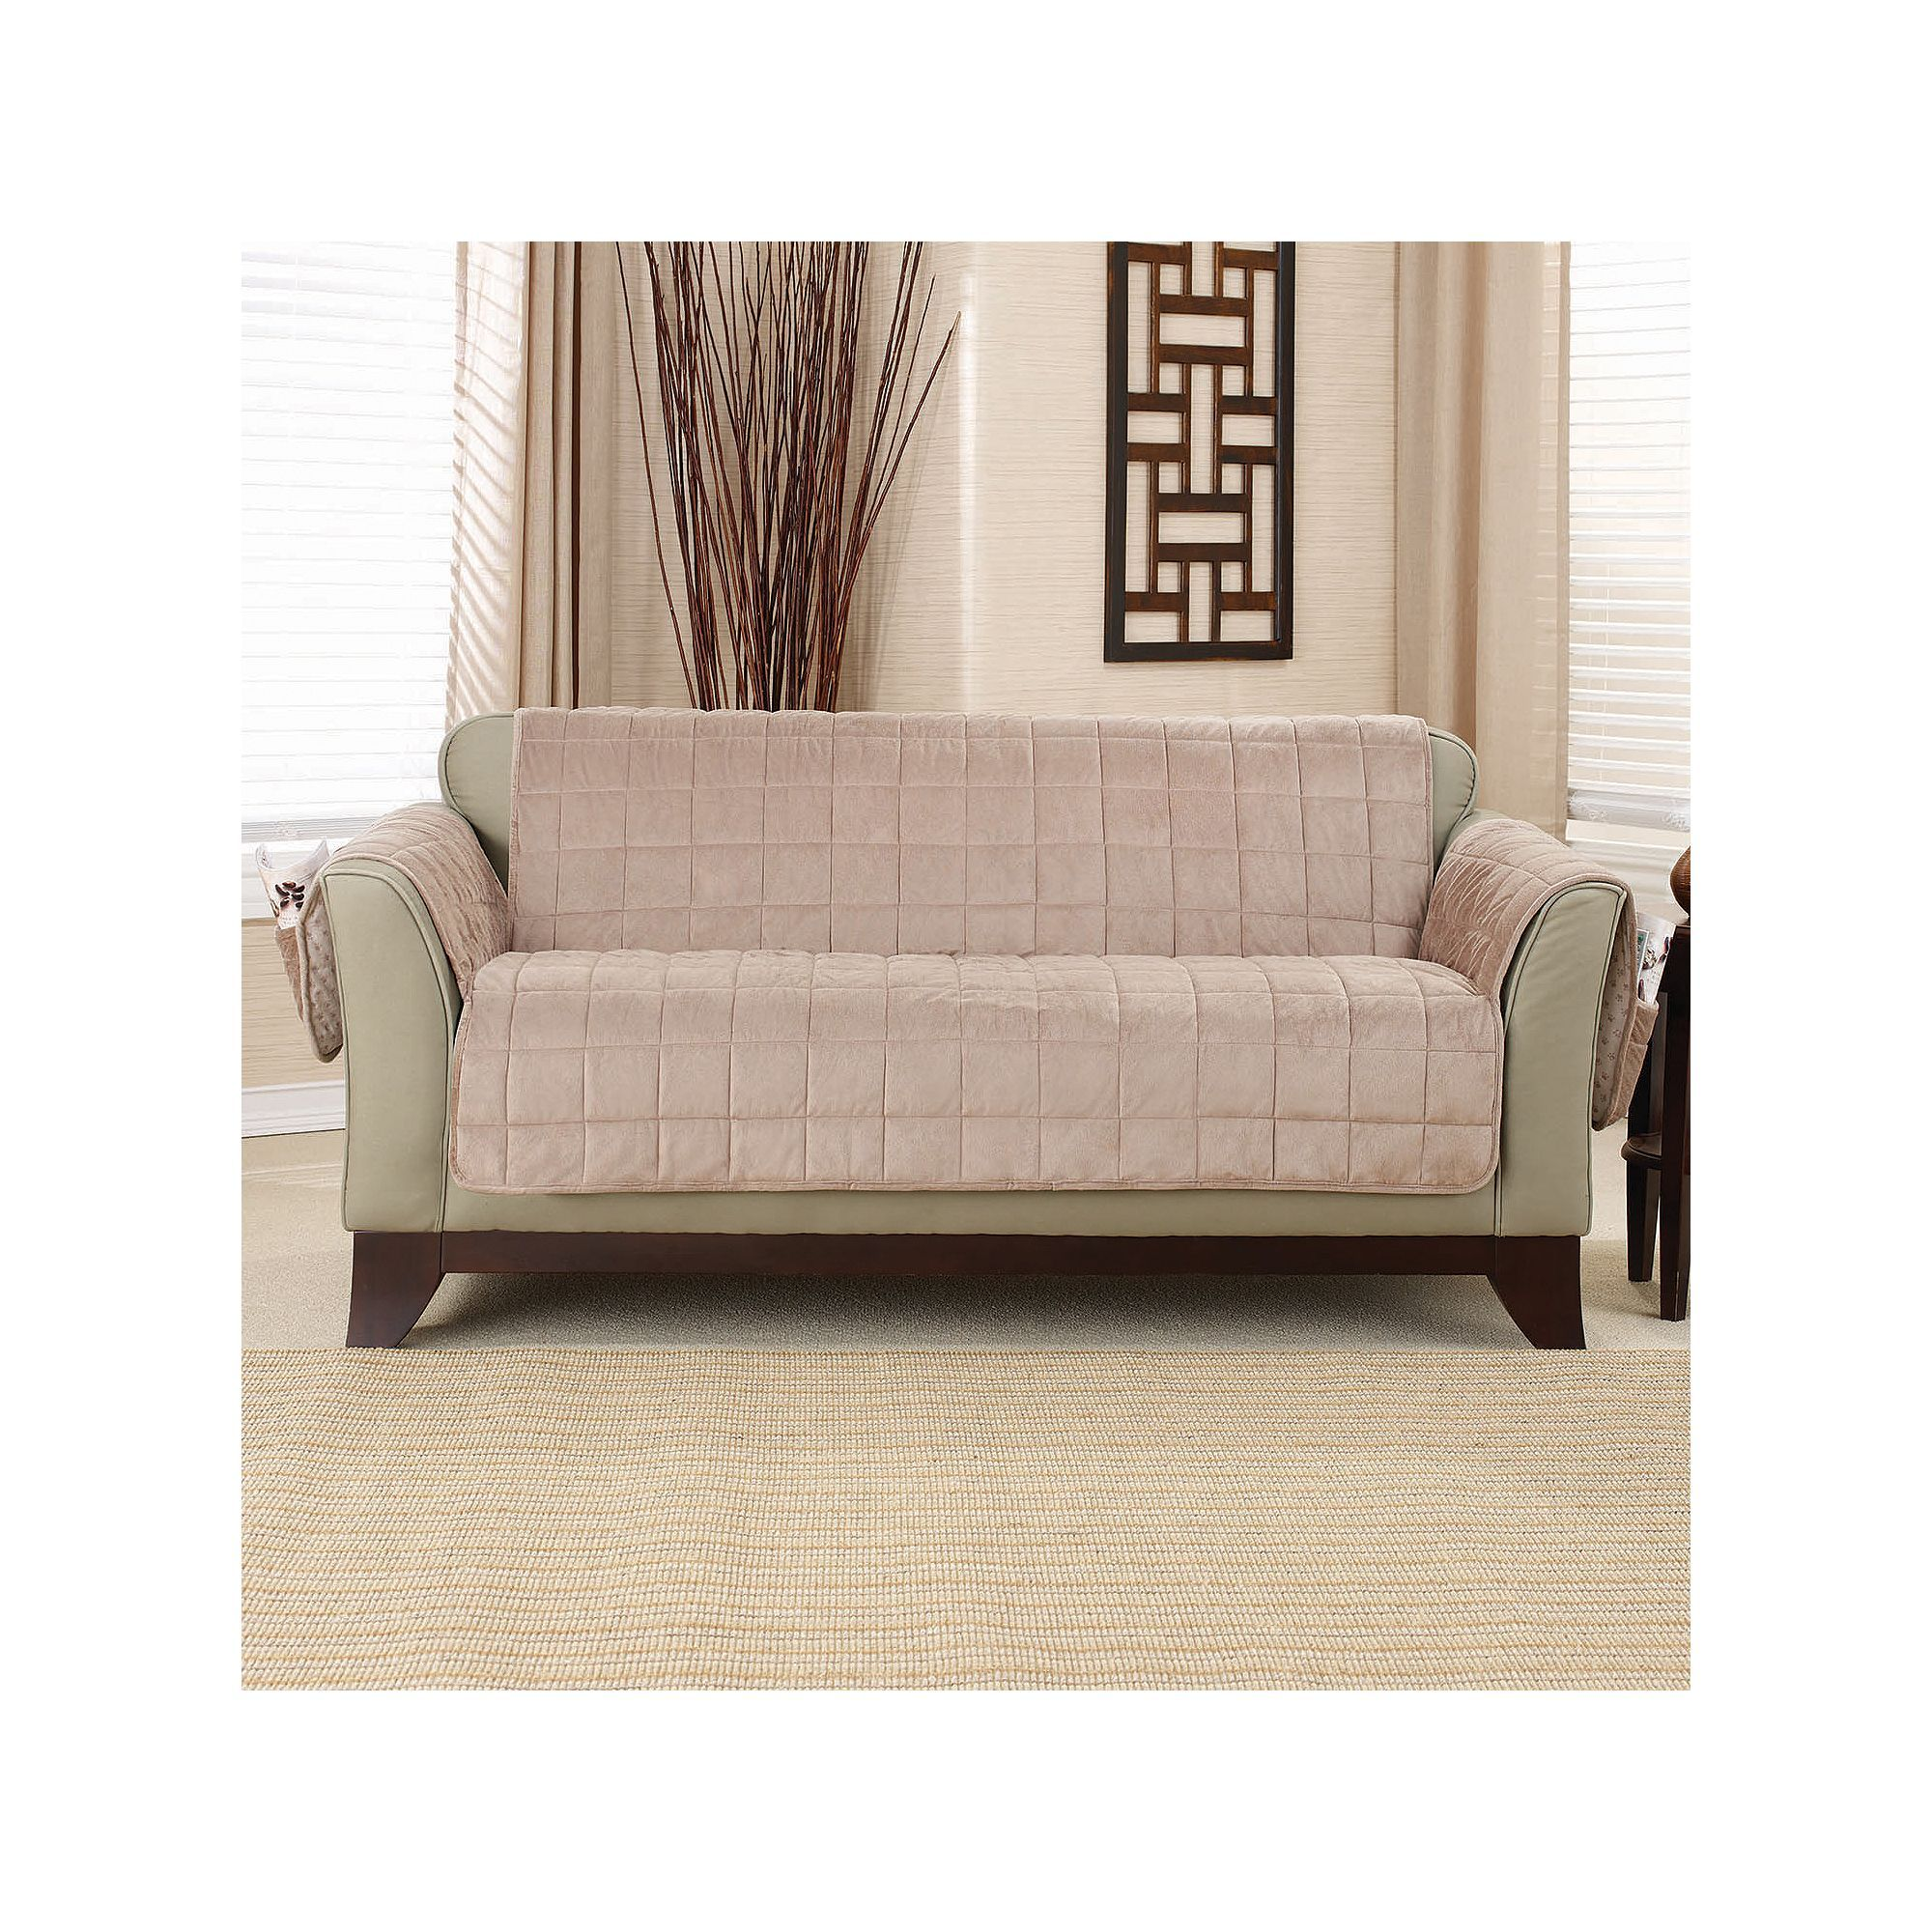 iec grey energycrops cover loveseat bed slipcover dark extraordinary sofa lysed flottebo beddinge engaging